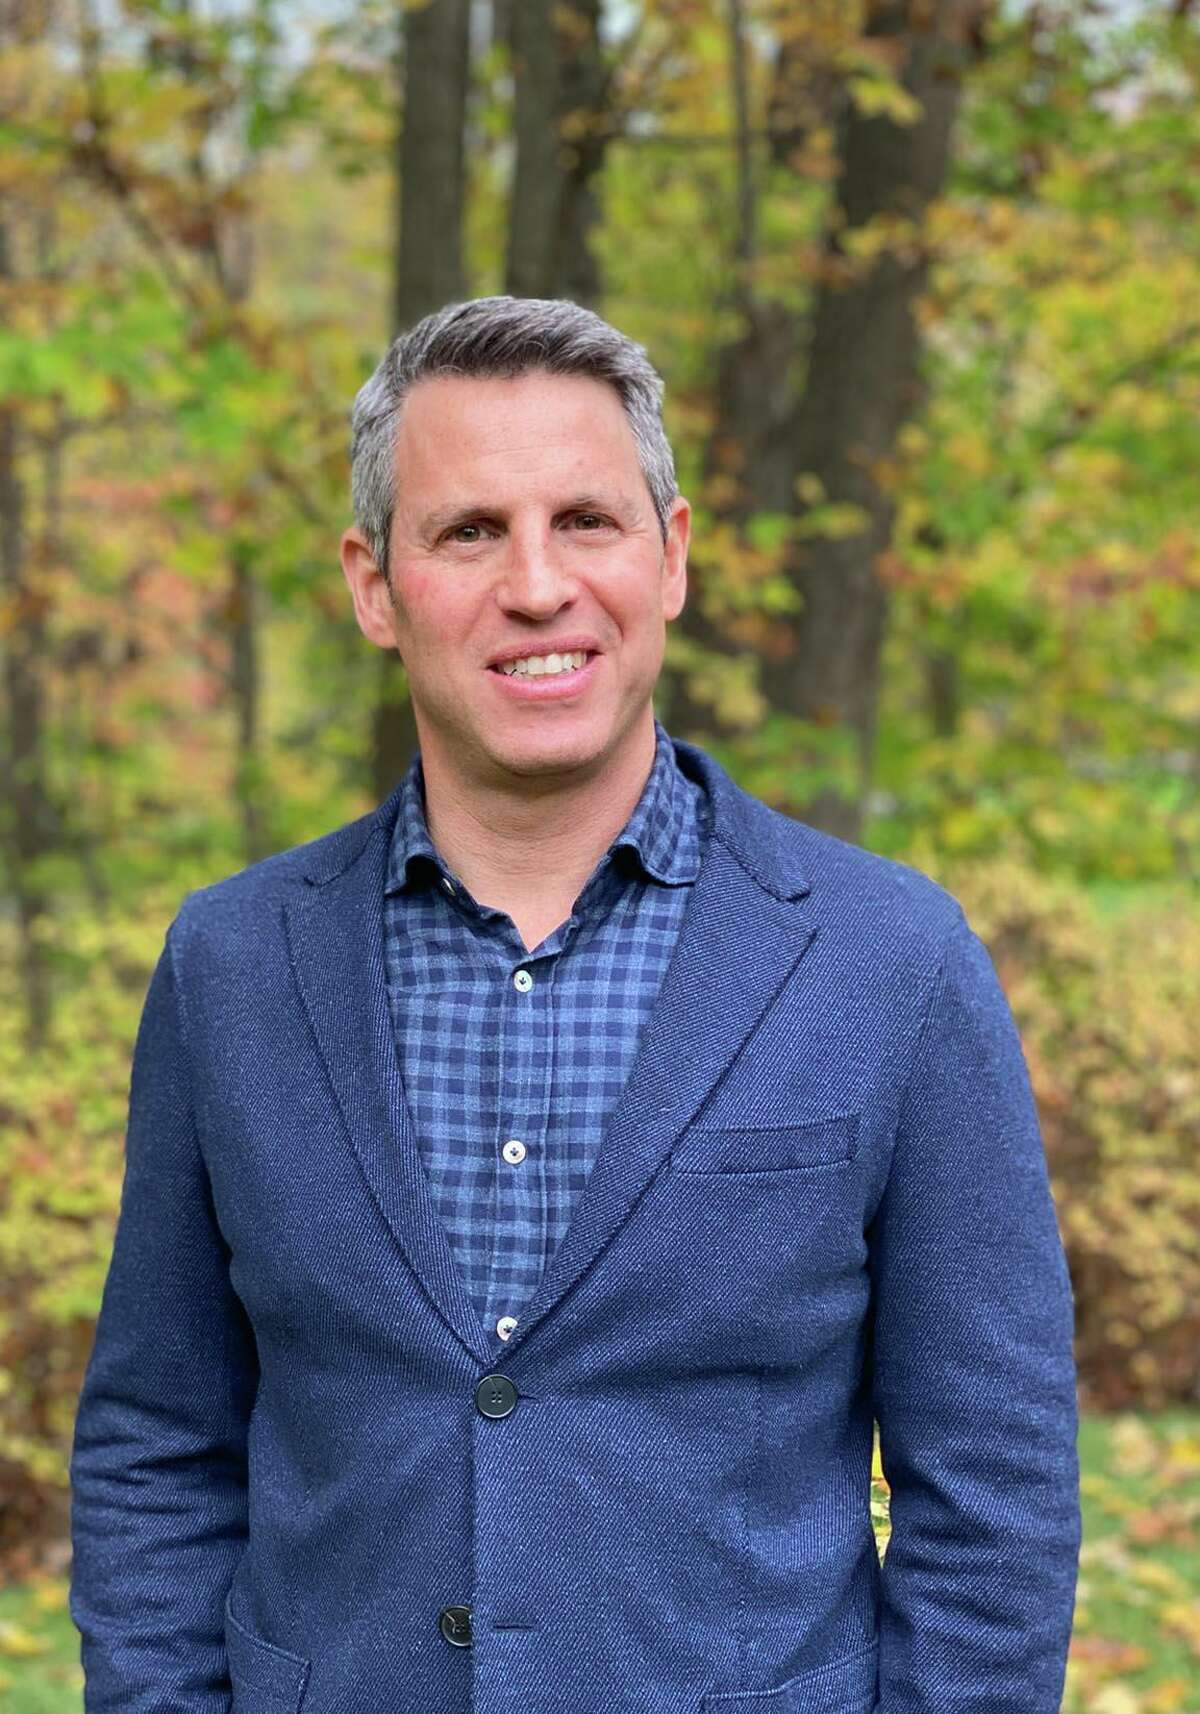 Greg Schwartz is co-founder and CEO of Tomo Networks, a financial-technology startup focused on the real estate industry that will be headquartered in Stamford, Conn.